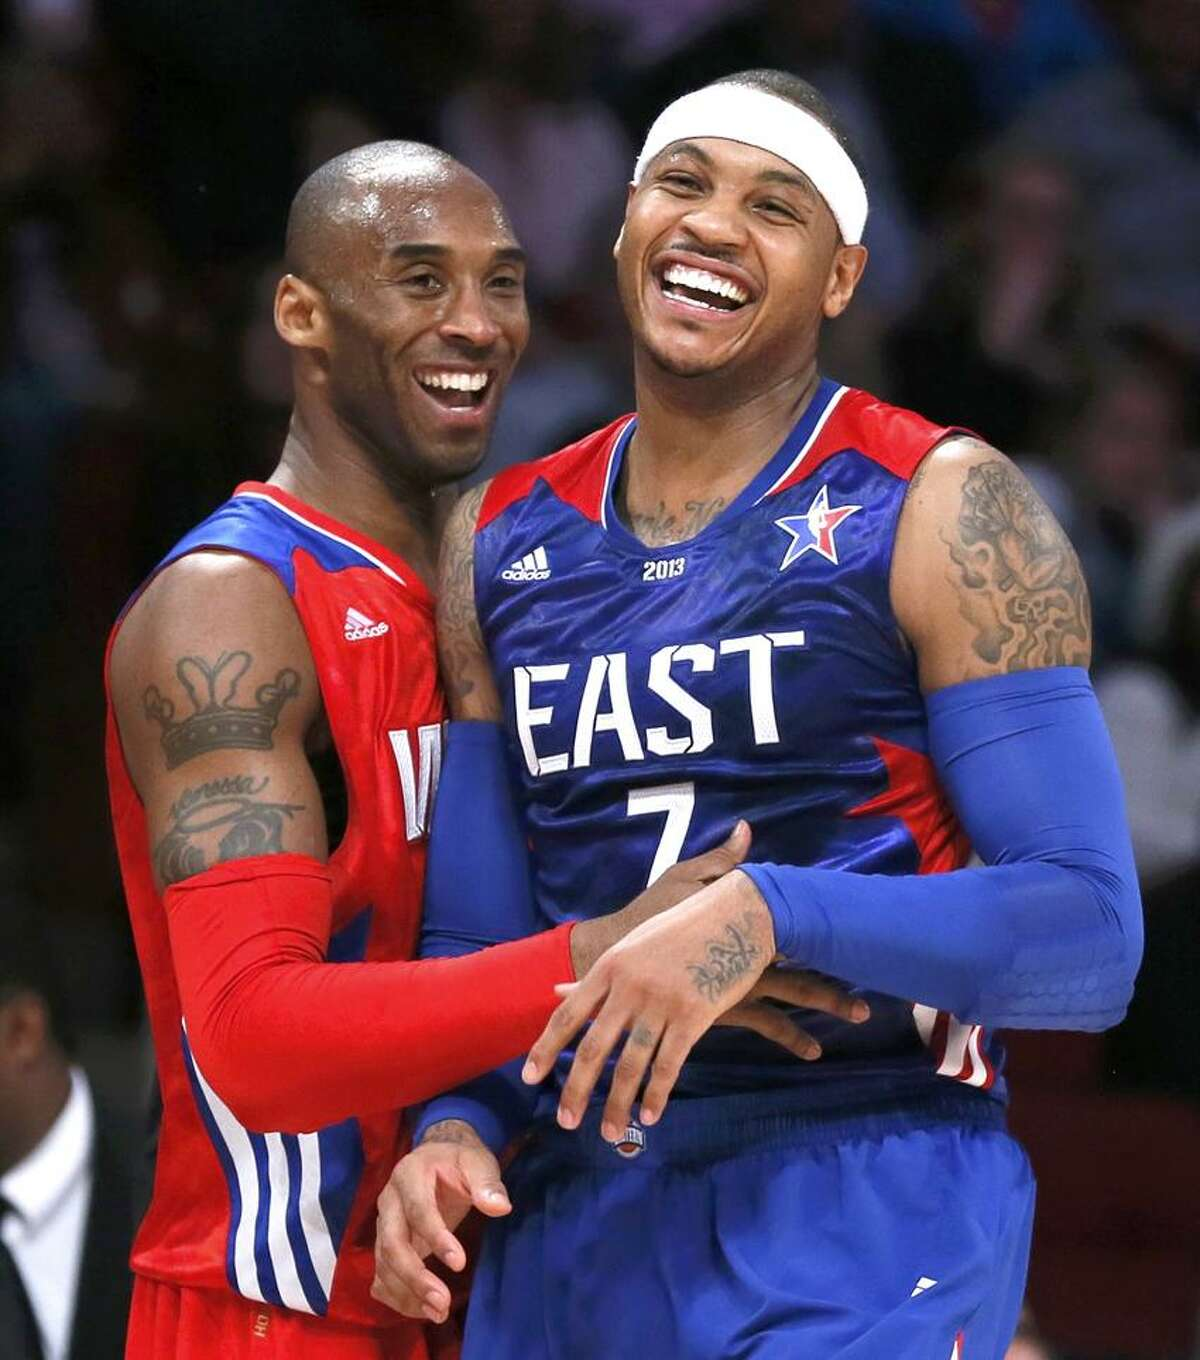 NBA All-Star Kobe Bryant of the Los Angeles Lakers (L) and All-Star Carmelo Anthony of the New York Knicks laugh during the NBA All-Star basketball game in Houston, Texas, February 17, 2013. REUTERS/Lucy Nicholson (UNITED STATES - Tags: SPORT BASKETBALL)